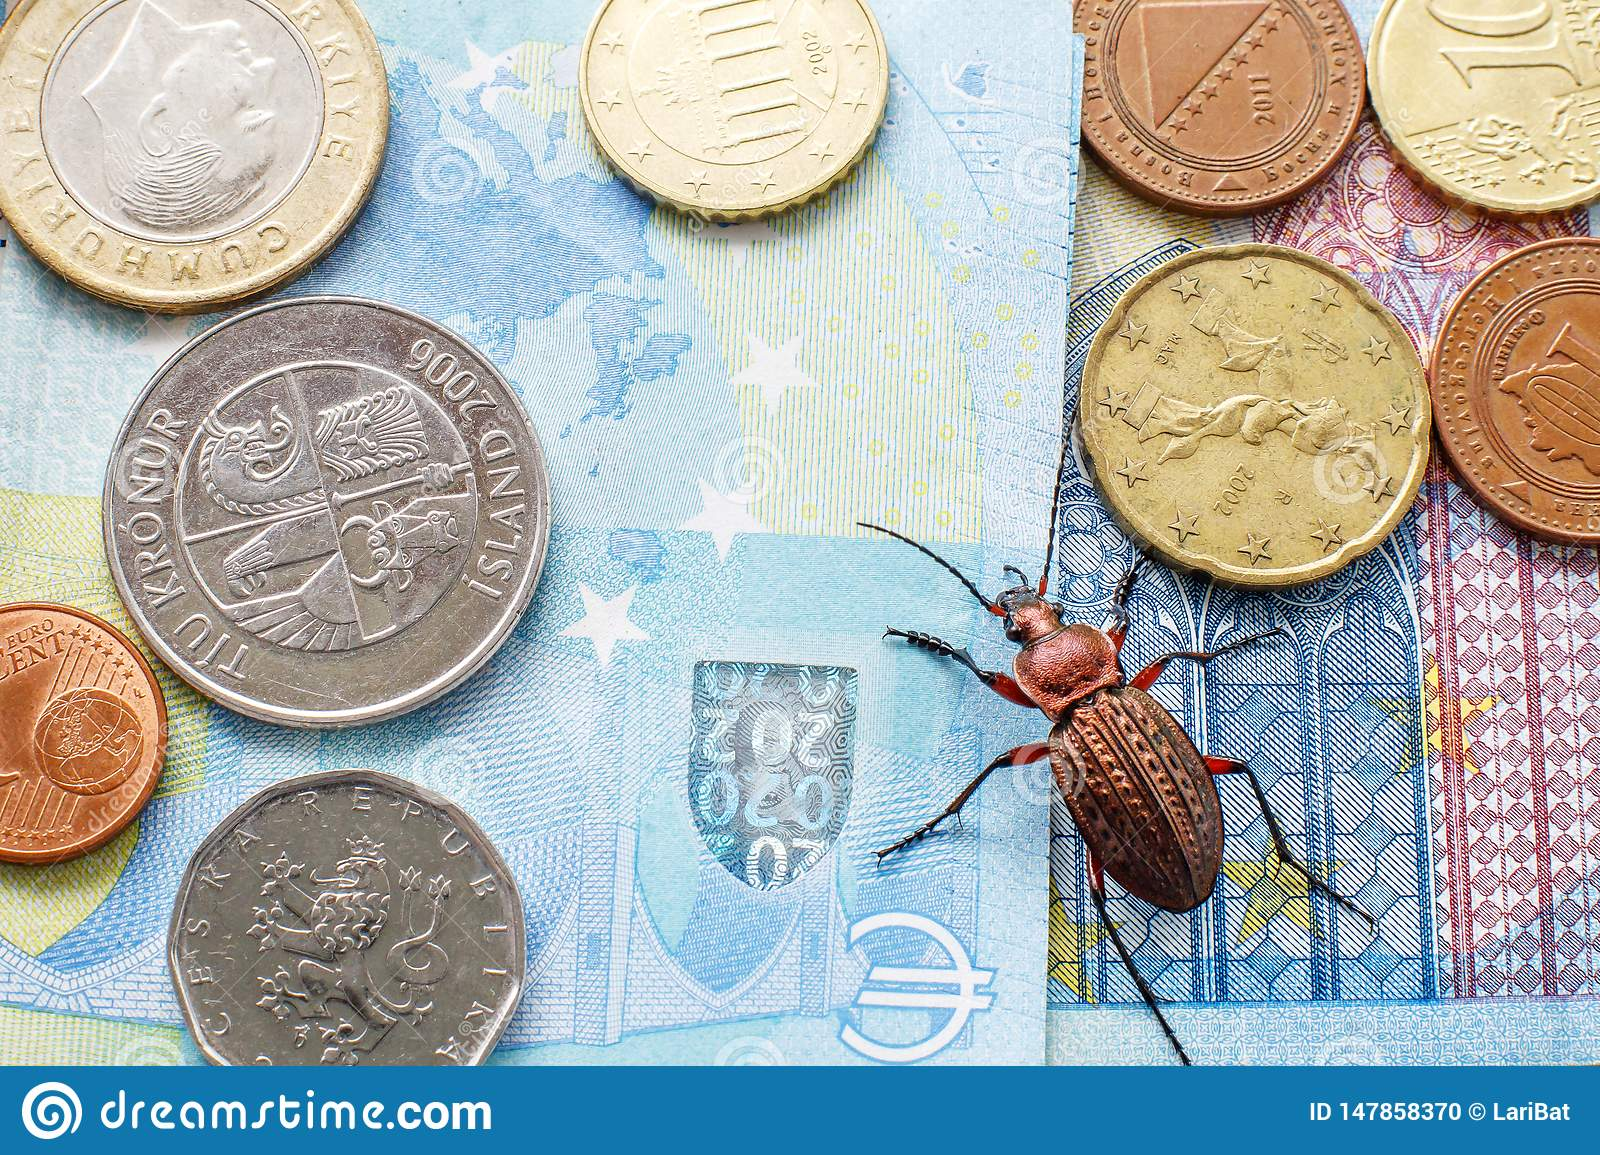 Ground beetle on the bill twenty euros, small coins of Europe. Concept: money beetle